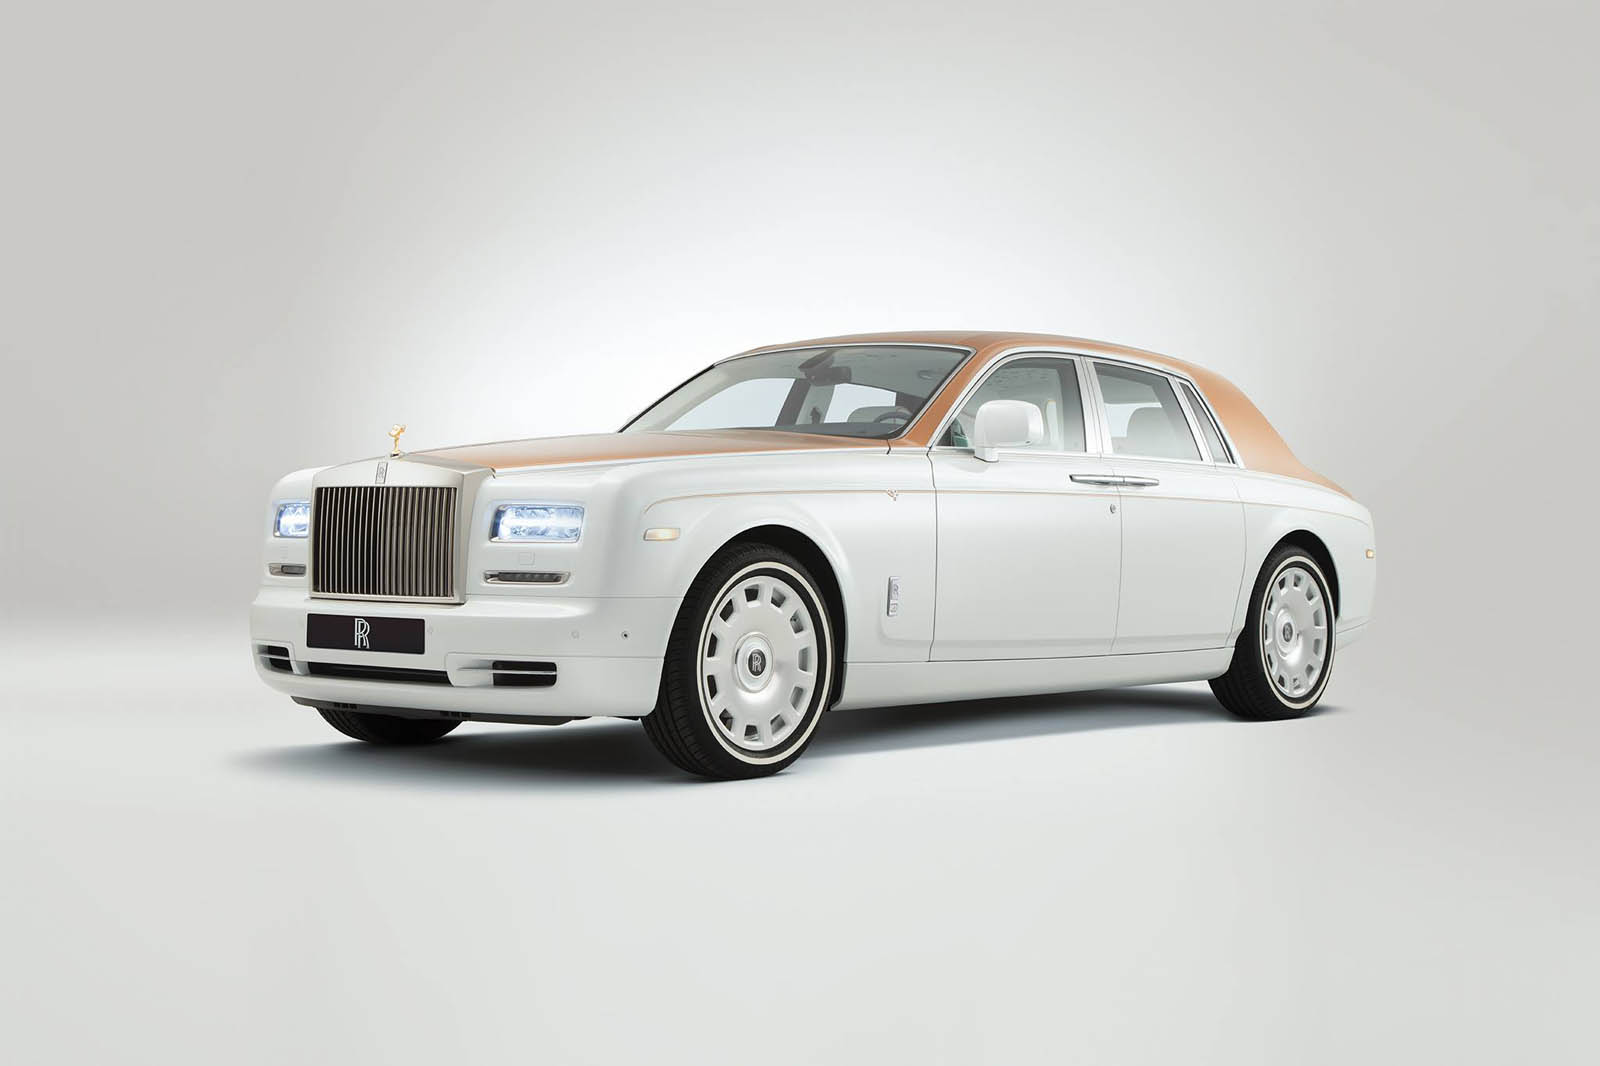 rolls-royce-Phantom-inspired-by-Sheikh-Zayed-Grand-Mosque-14